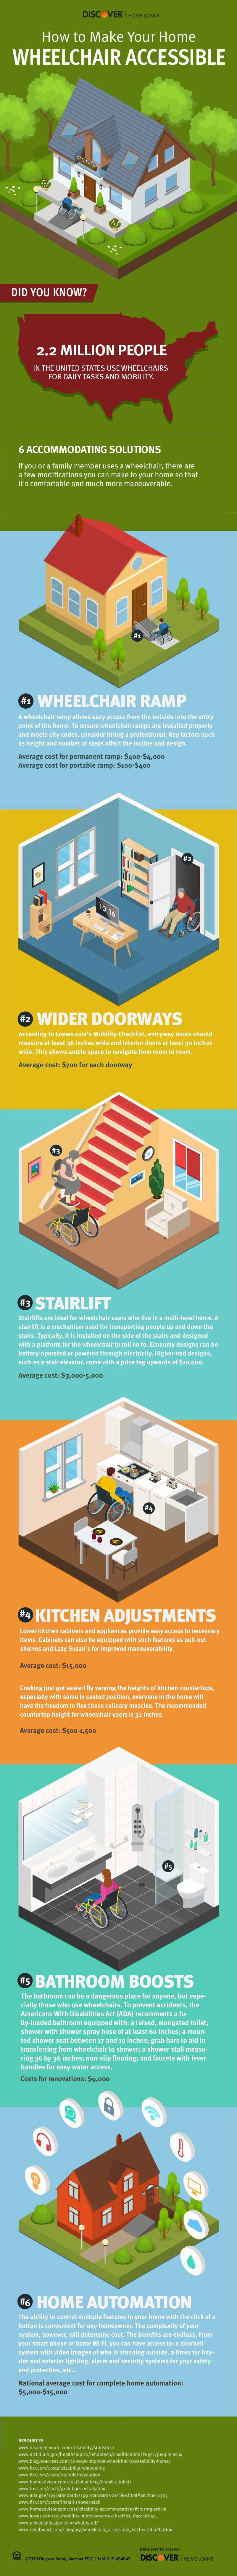 Infographic of ideas for making your home wheelchair accessible